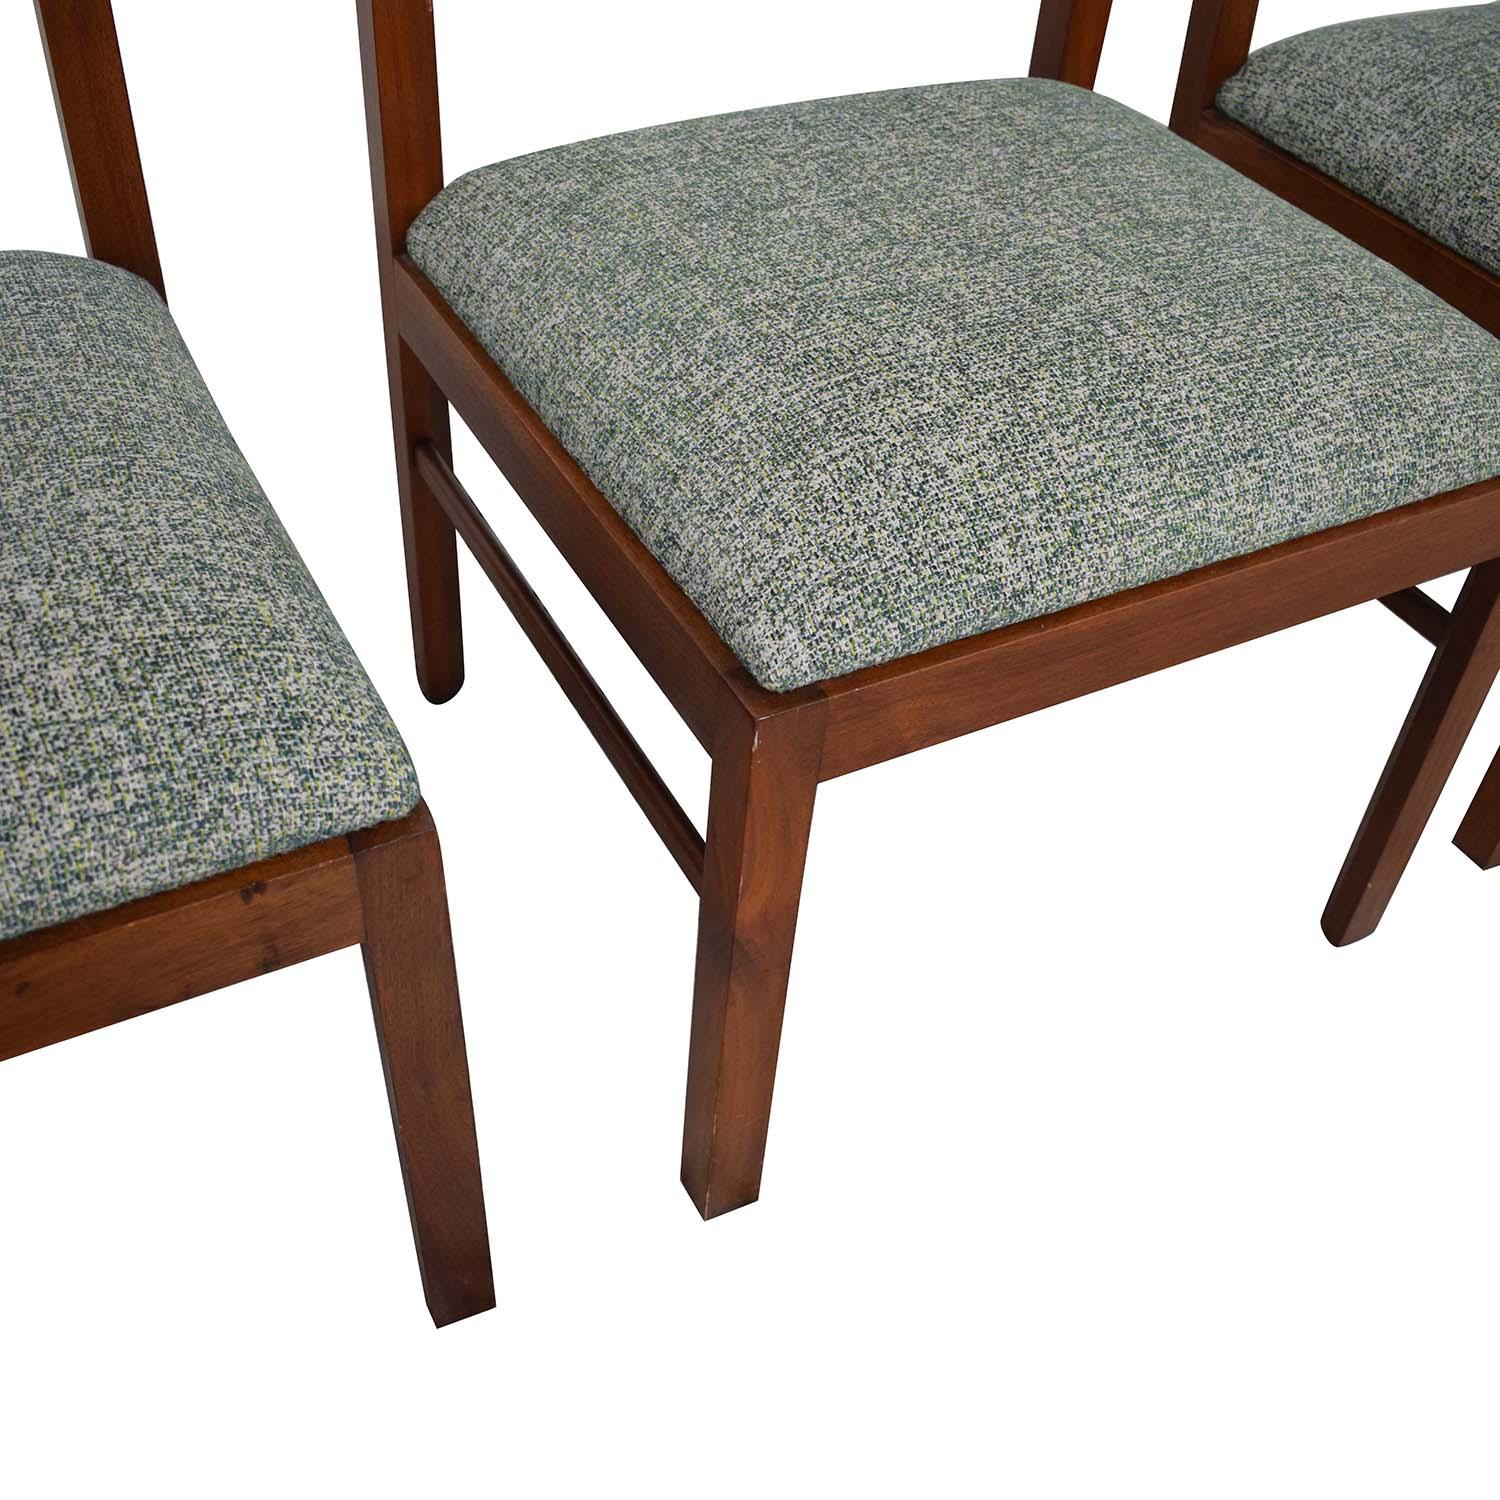 Cane Backed Dining Chairs / Dining Chairs